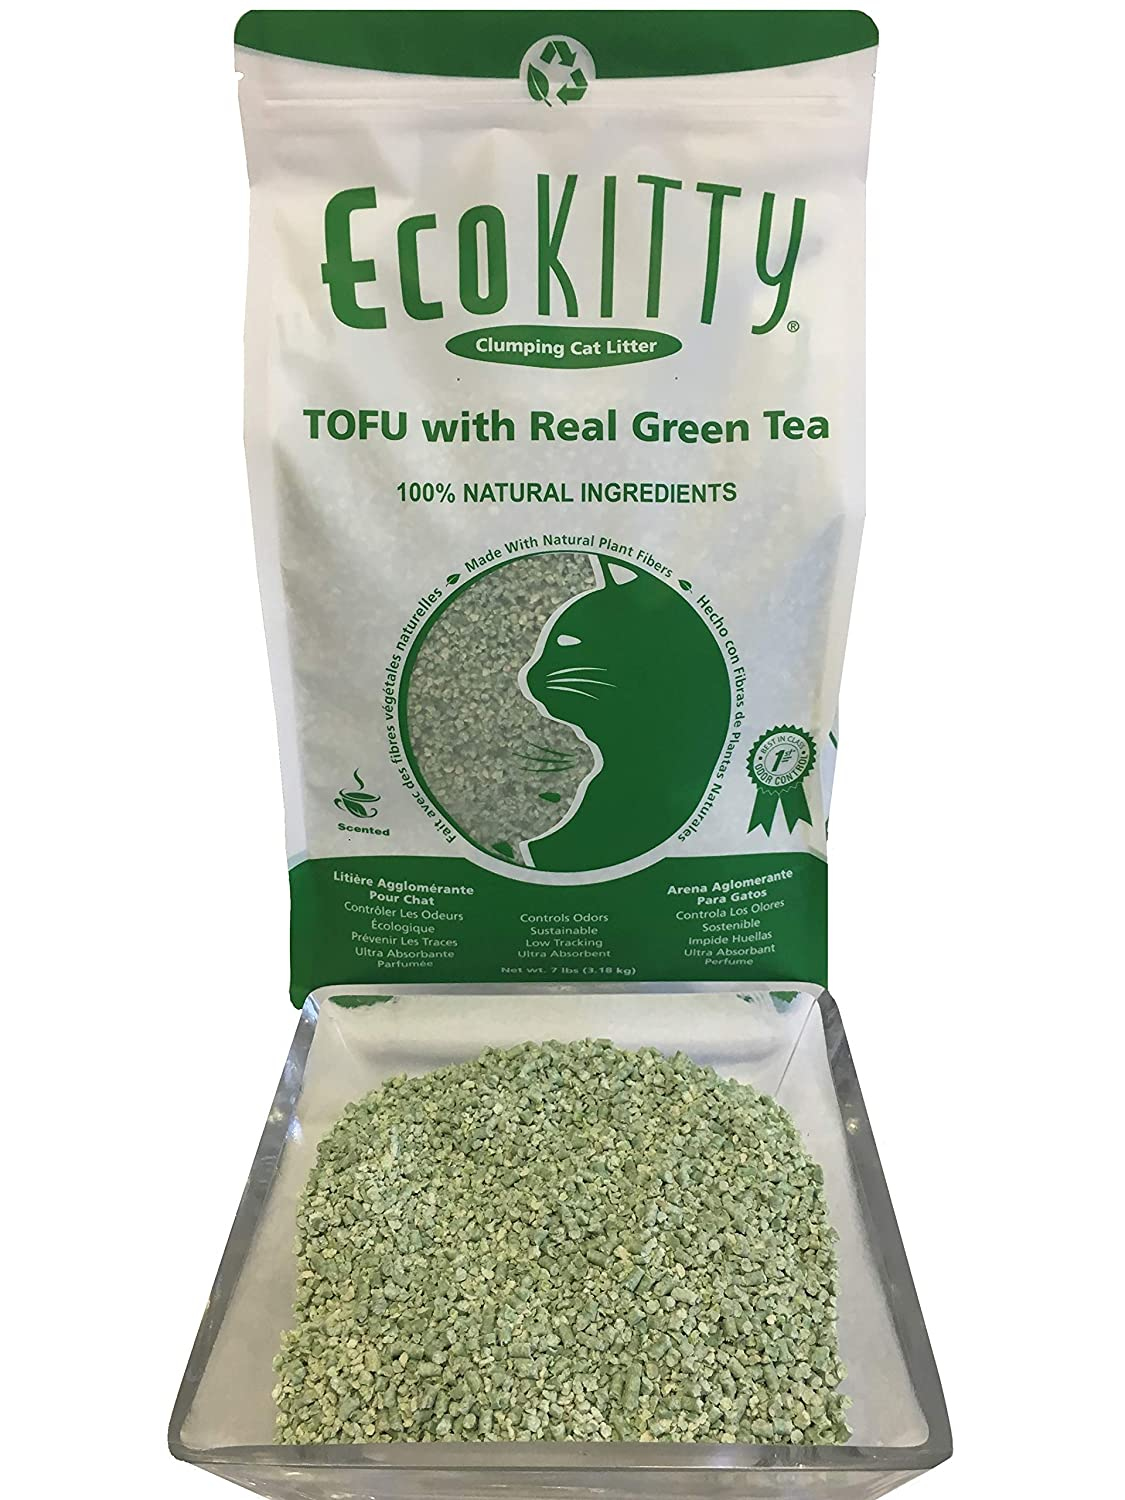 Amazon.com : EcoKitty Tofu Litter with Real Green Tea, 7 lb : Pet Supplies